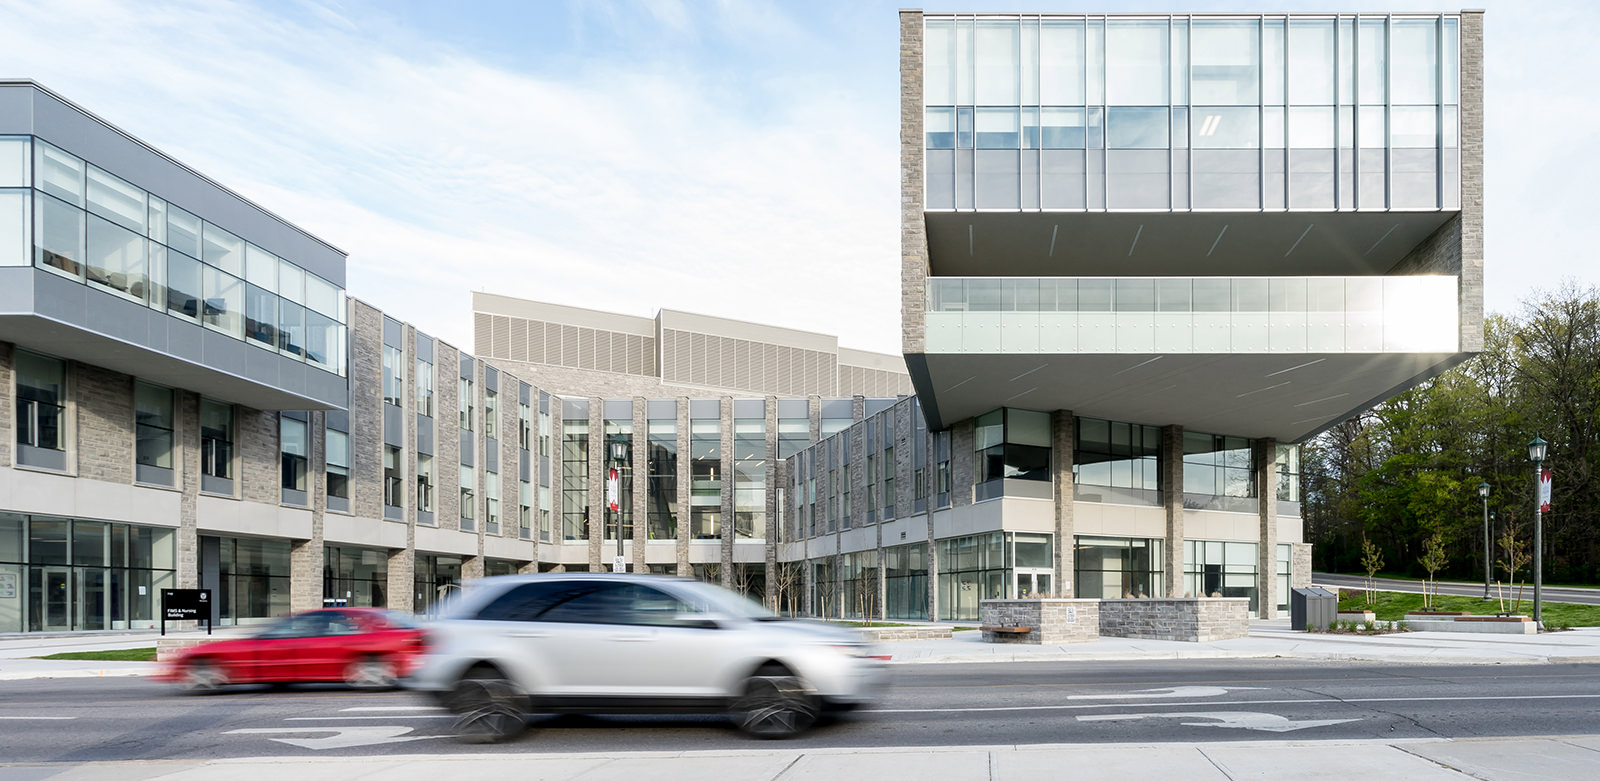 Exterior Architecture Photography of the Fims & Nursing Building by Scott Webb photography